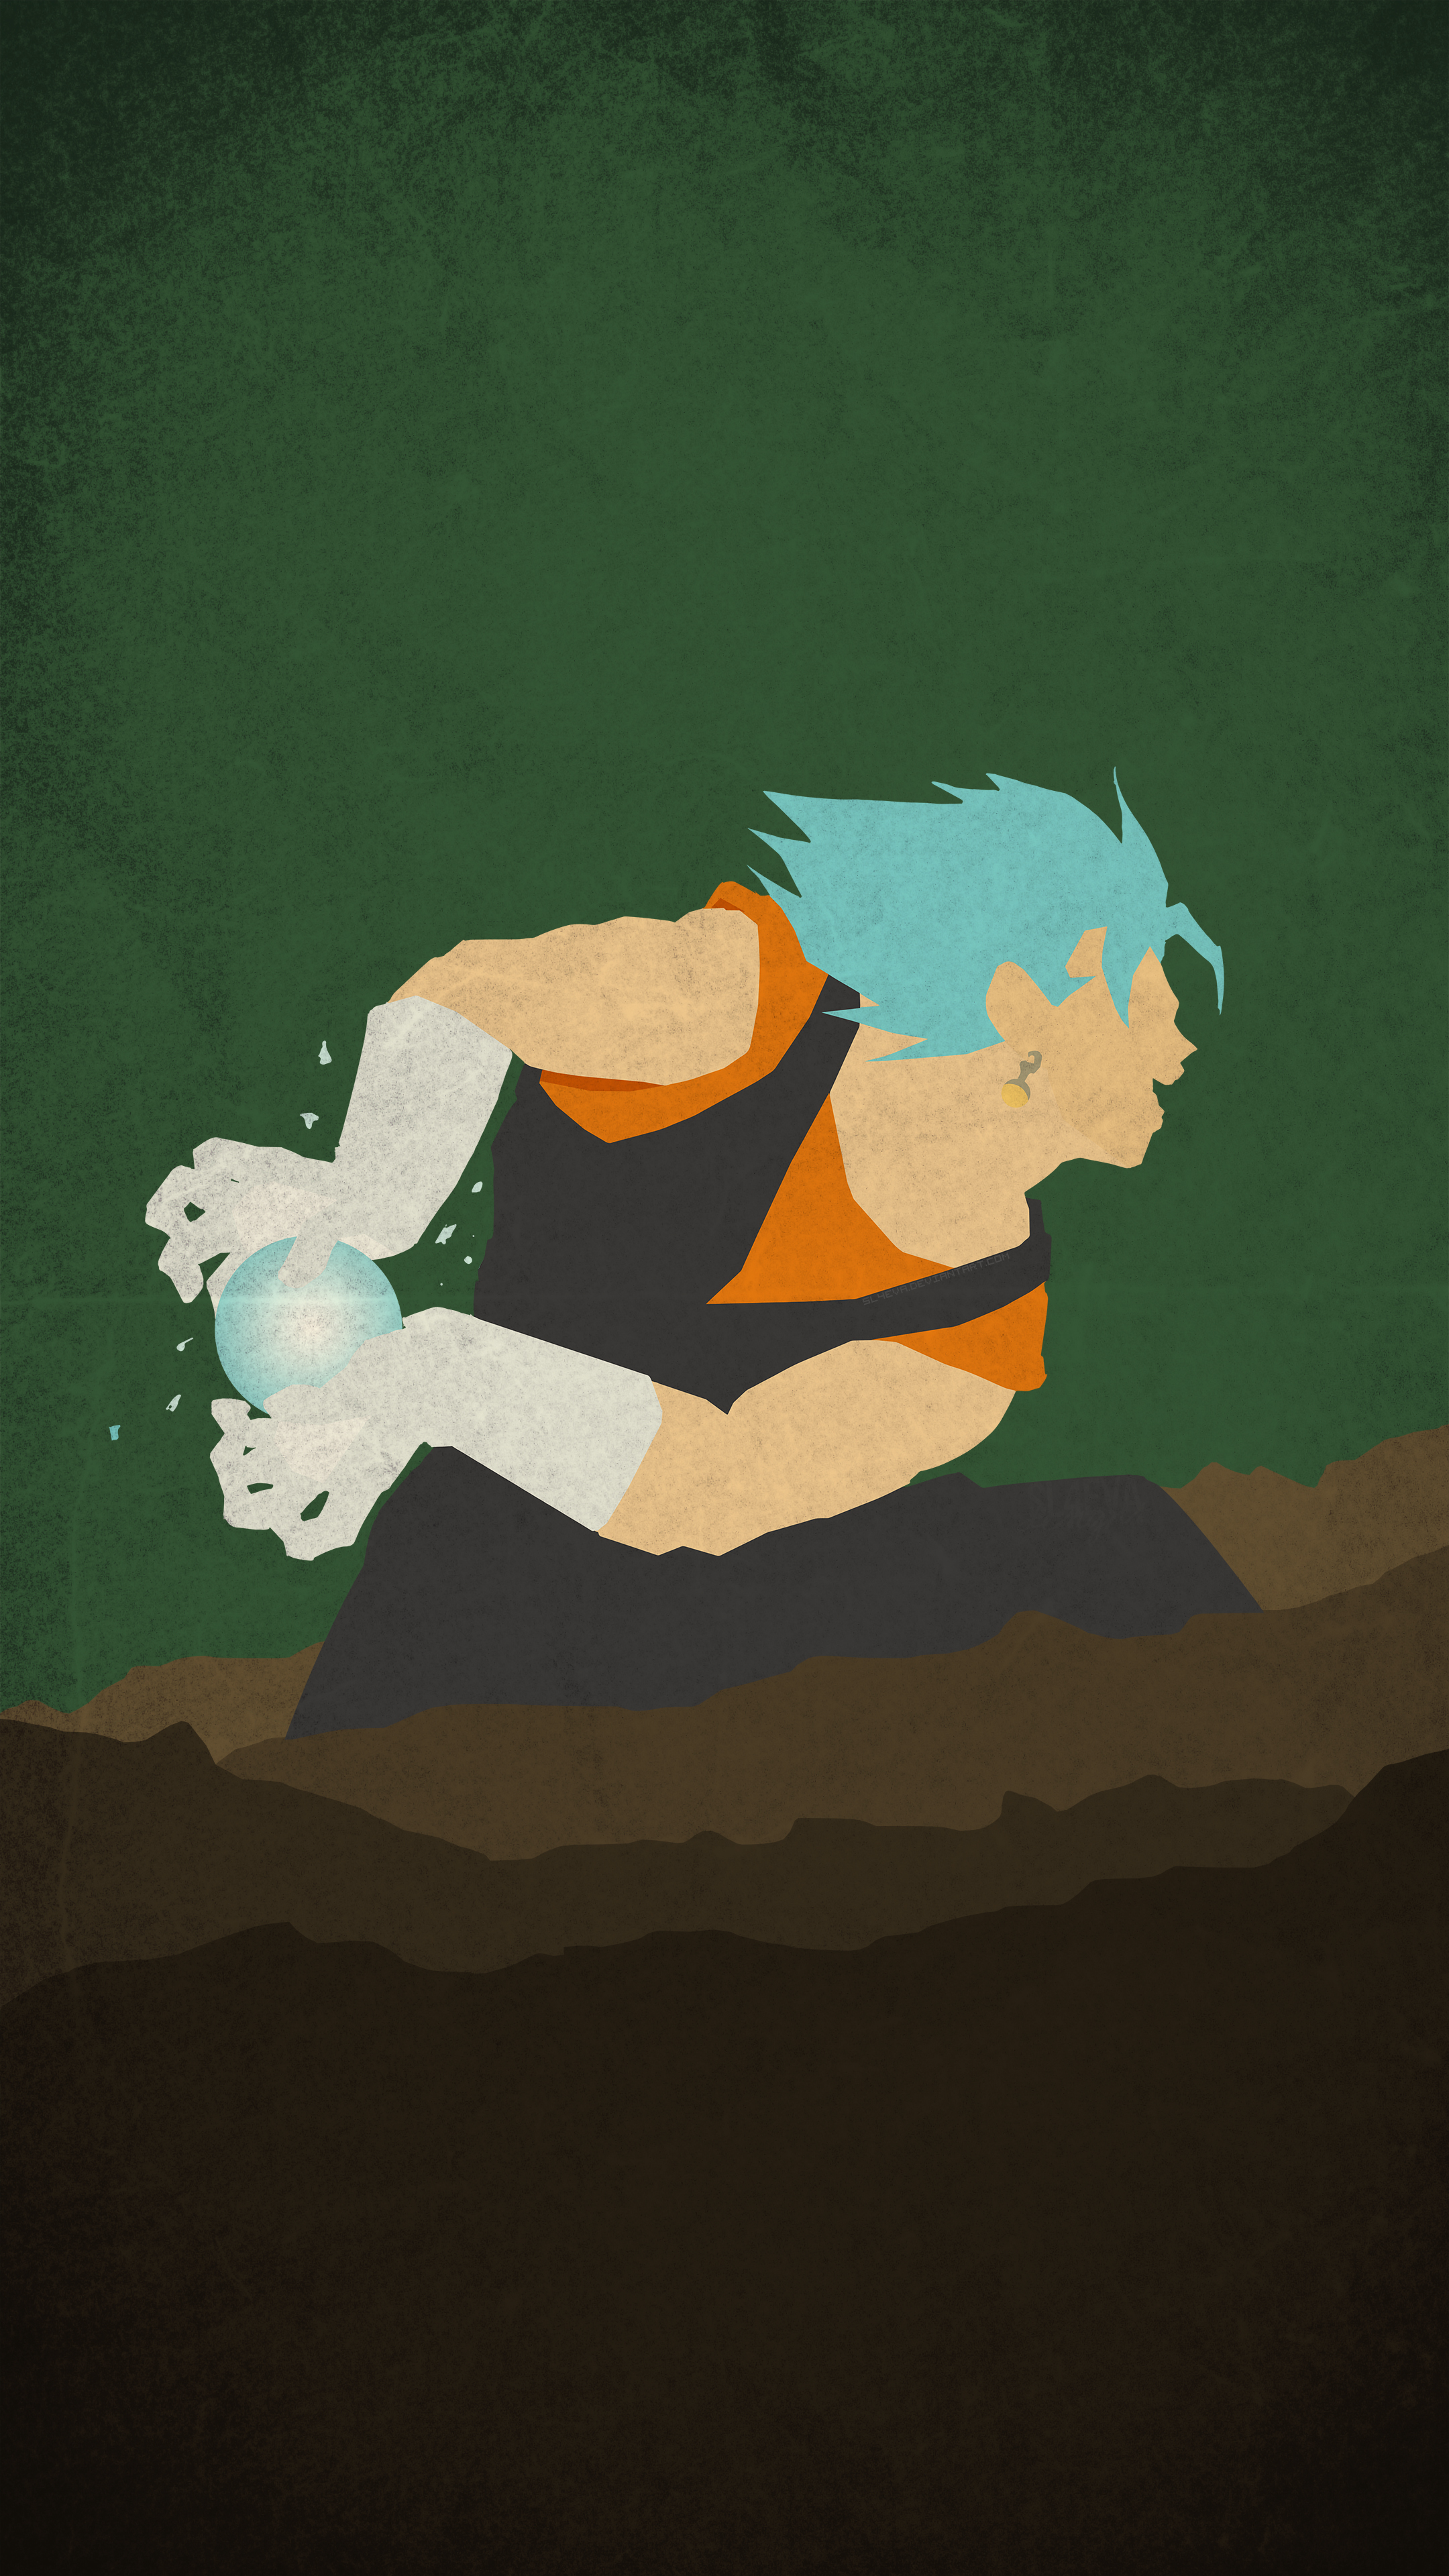 Minimalist Dragon Ball Wallpaper Phone 2160x3840 Download Hd Wallpaper Wallpapertip